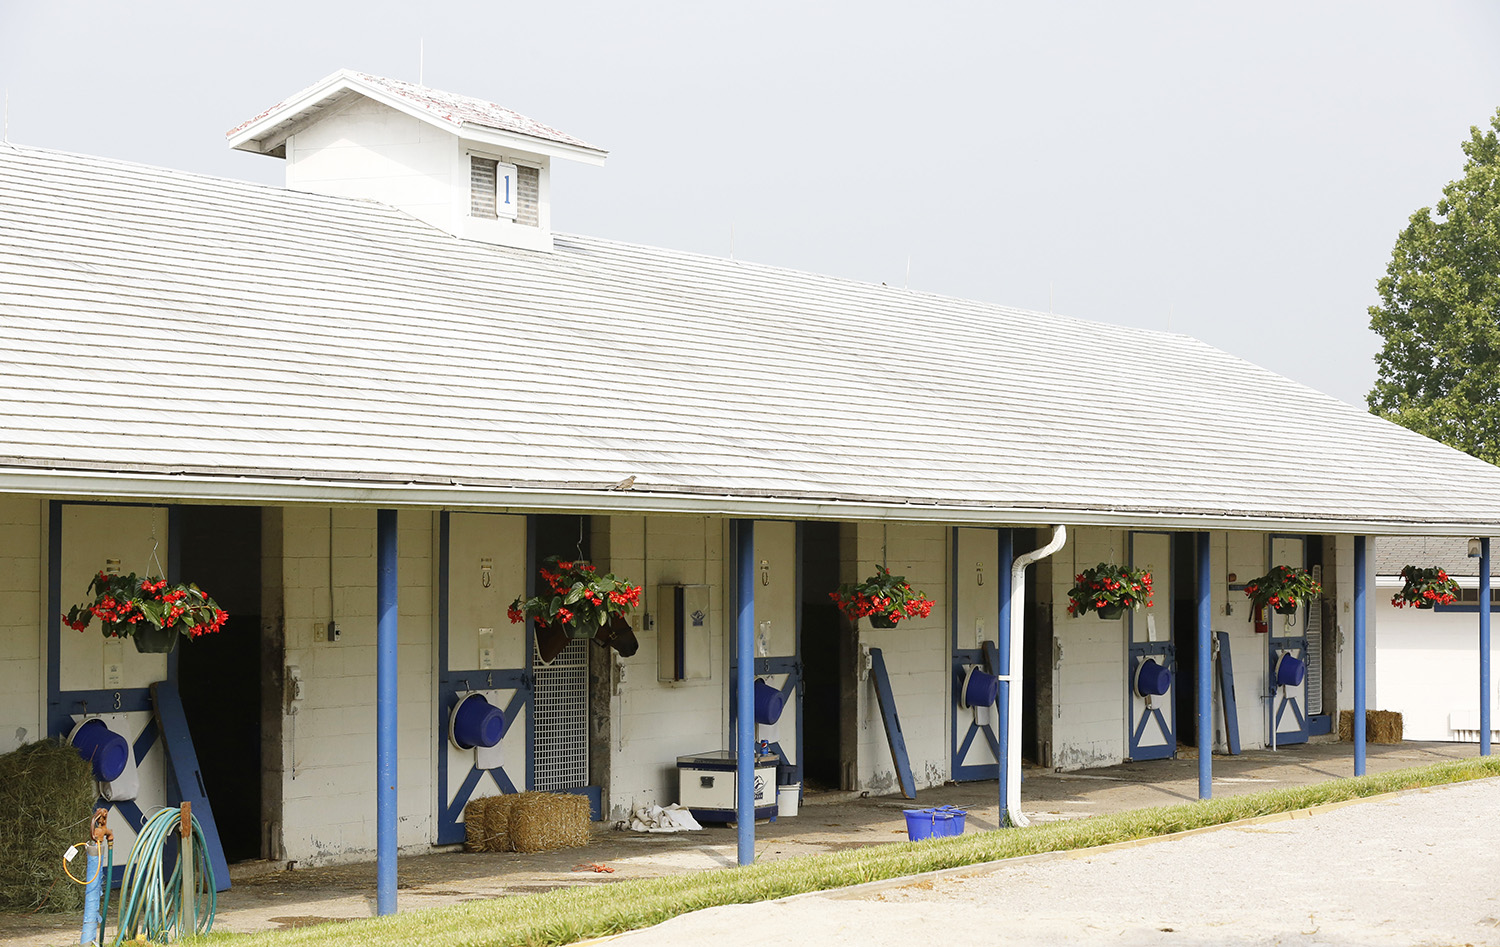 The Stables at Magdalena